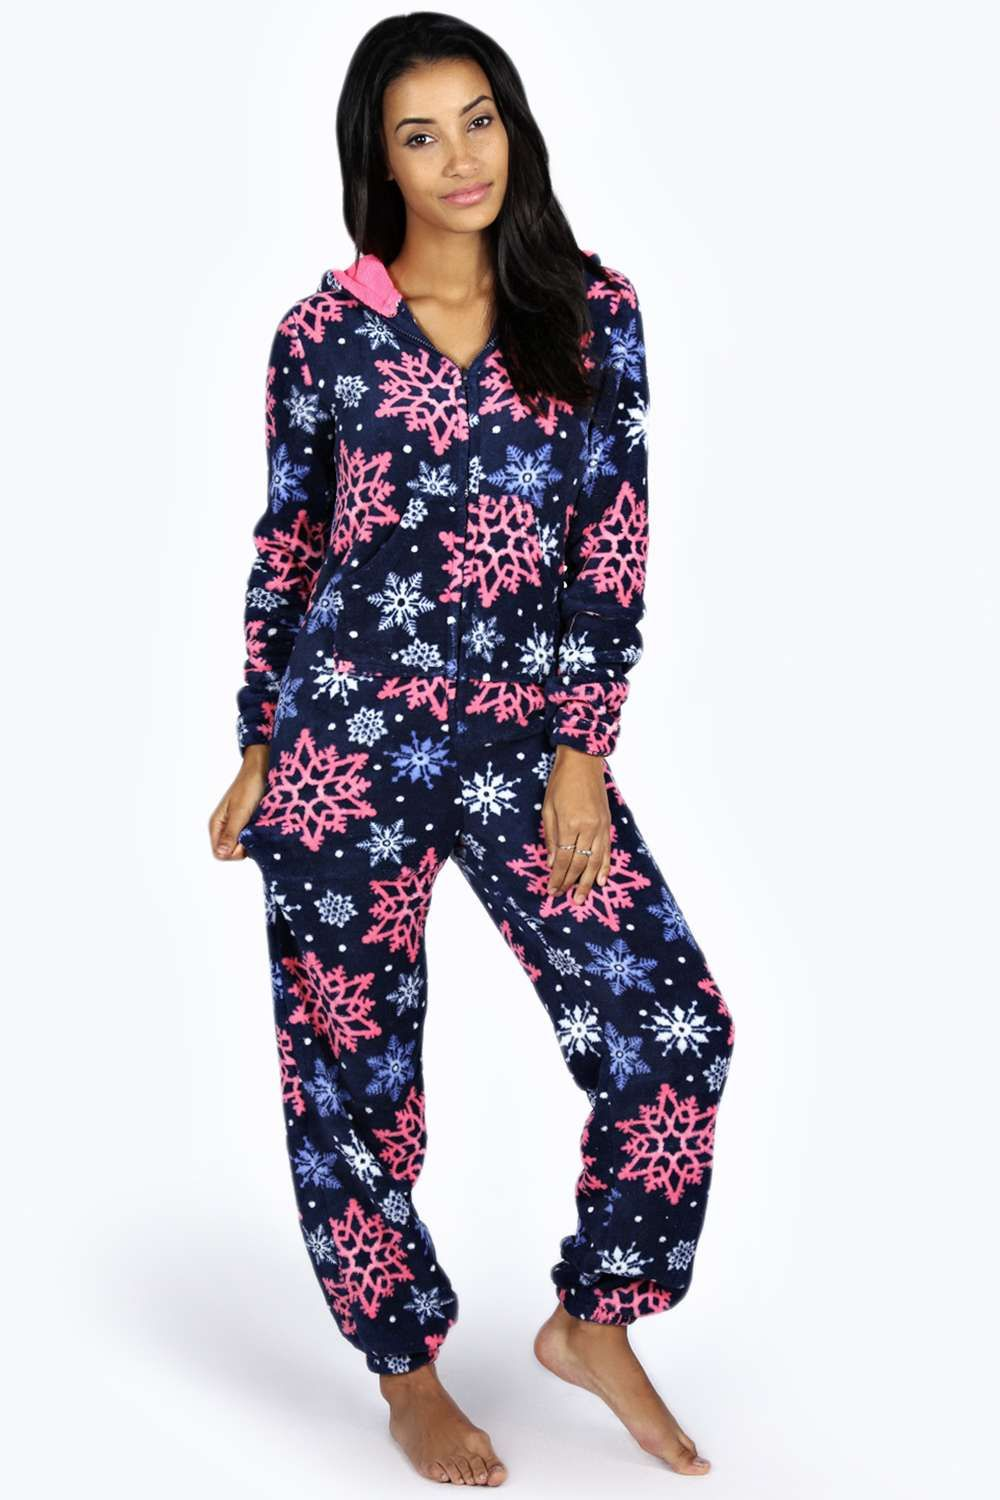 Samantha Snowflake Hooded Fleece Onesie Pajamas women